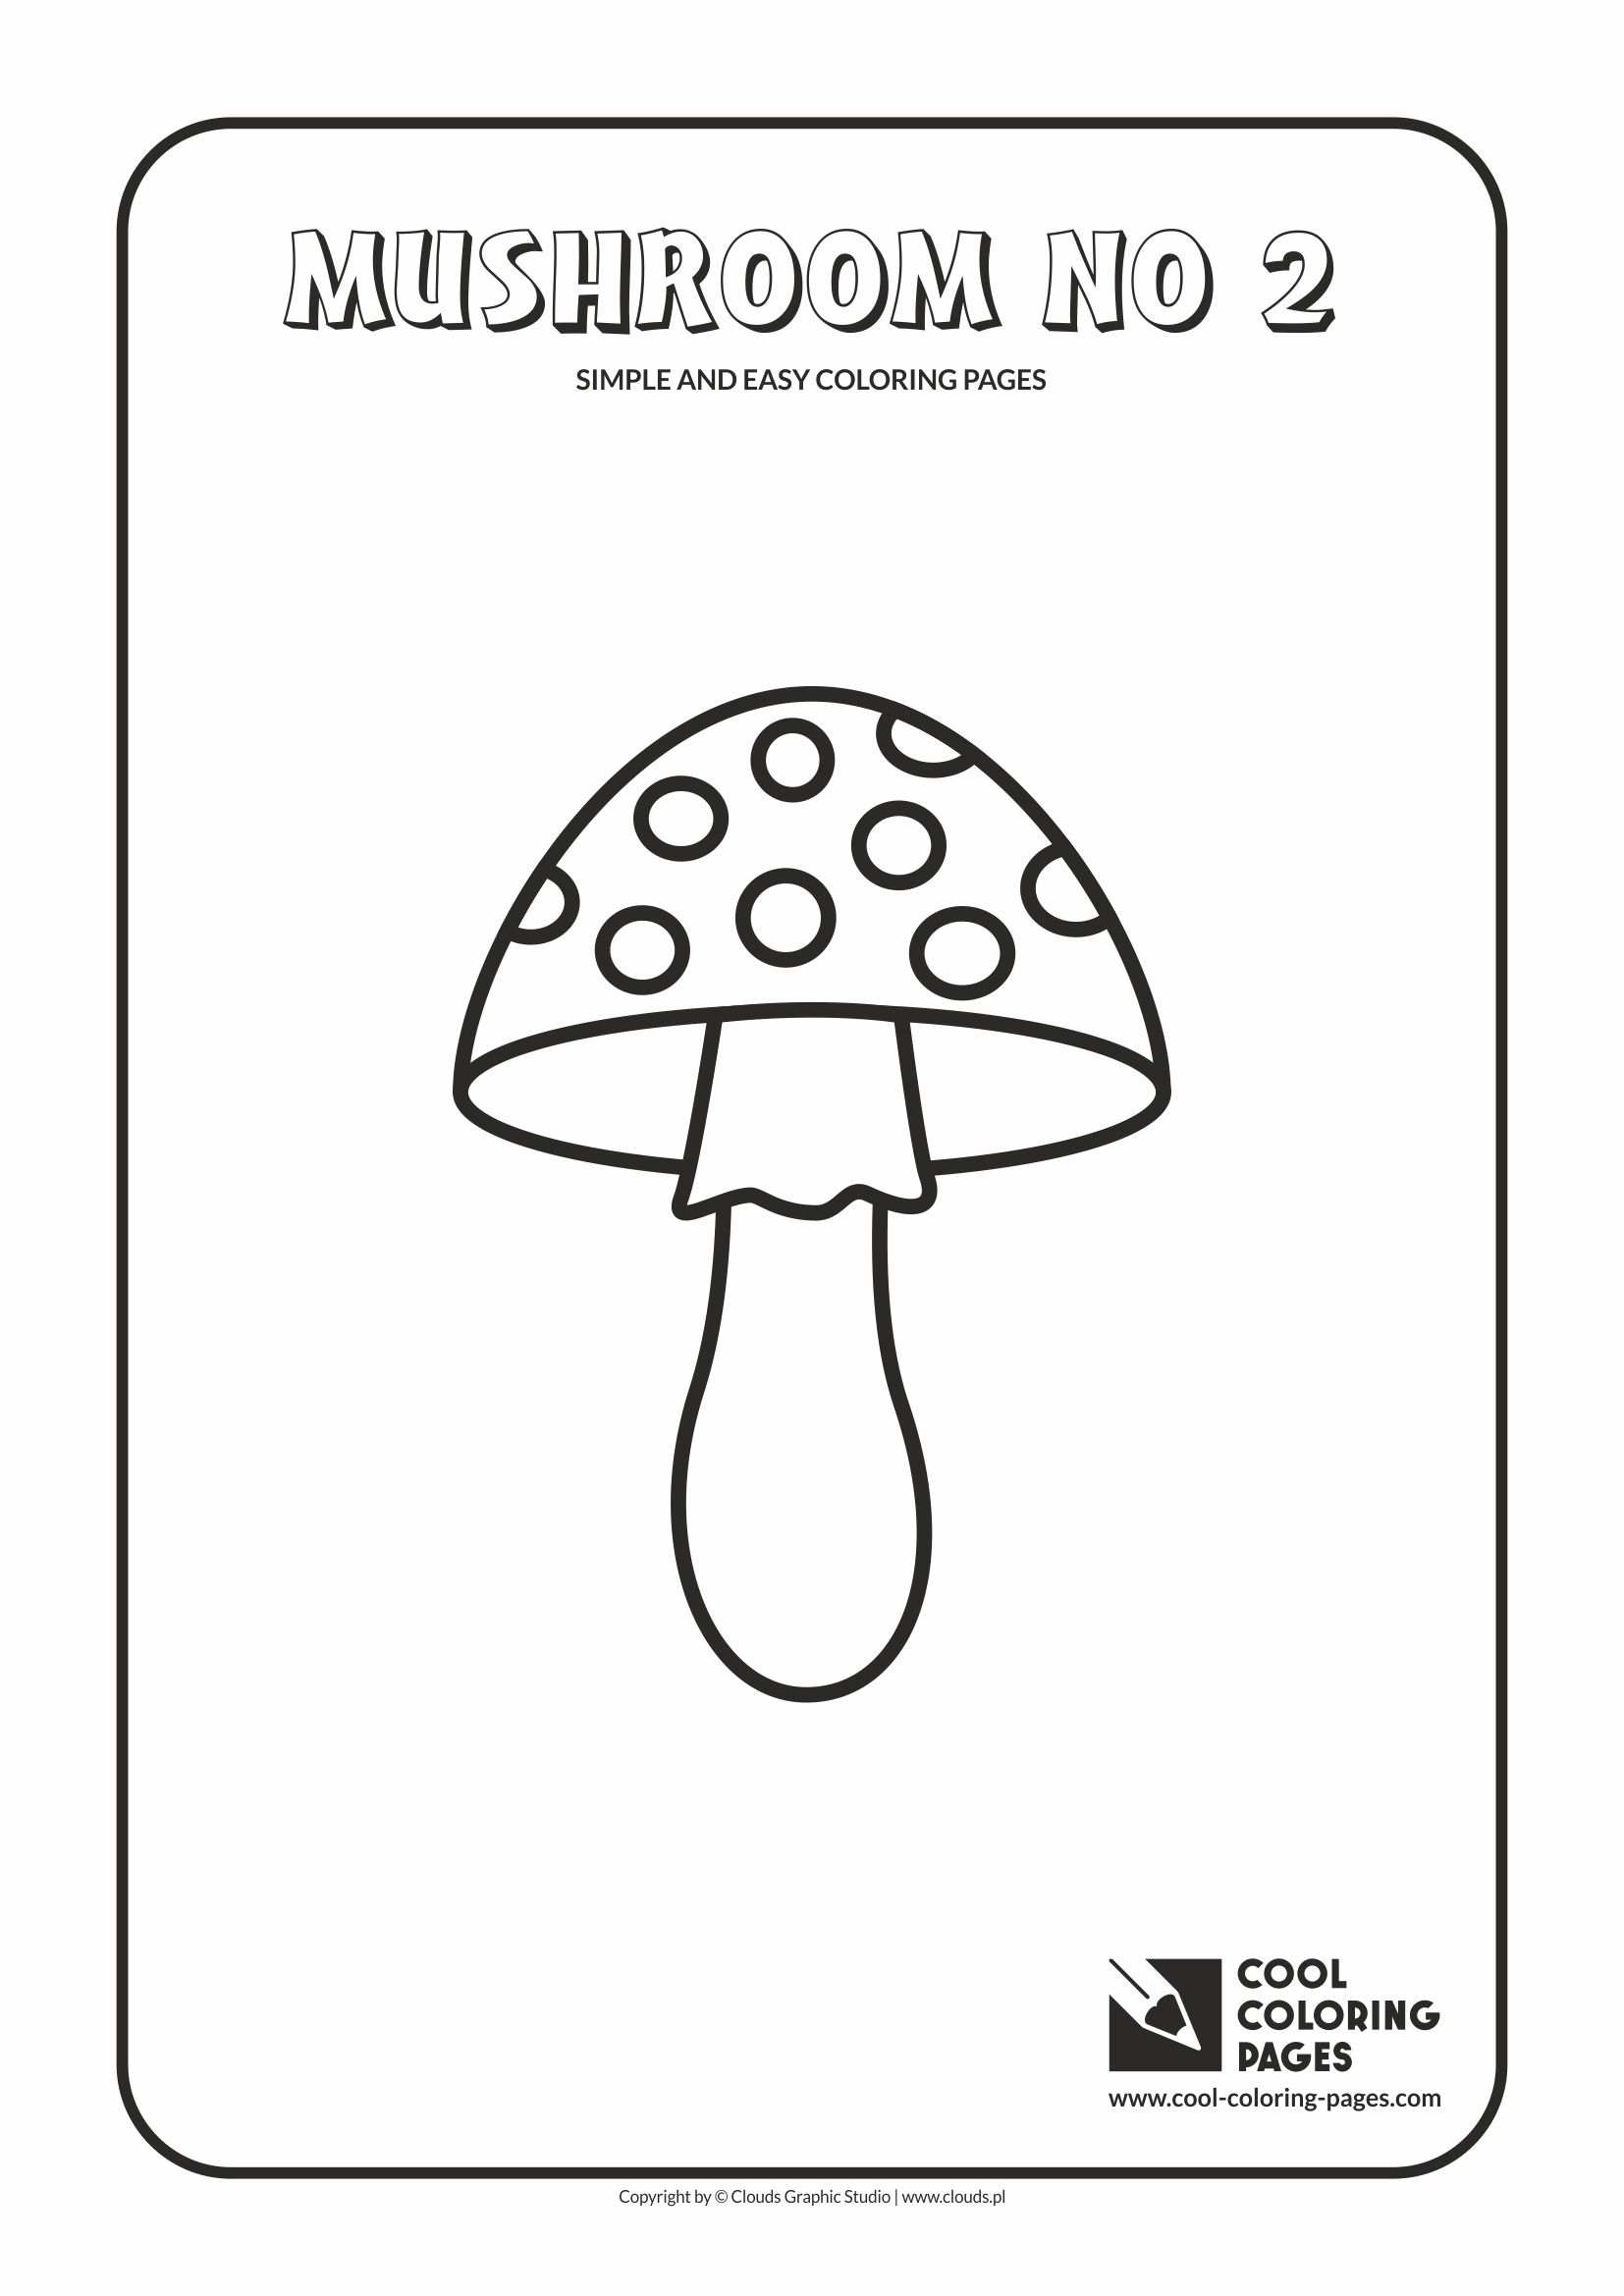 Simple and easy coloring pages for toddlers - Mushroom no 2